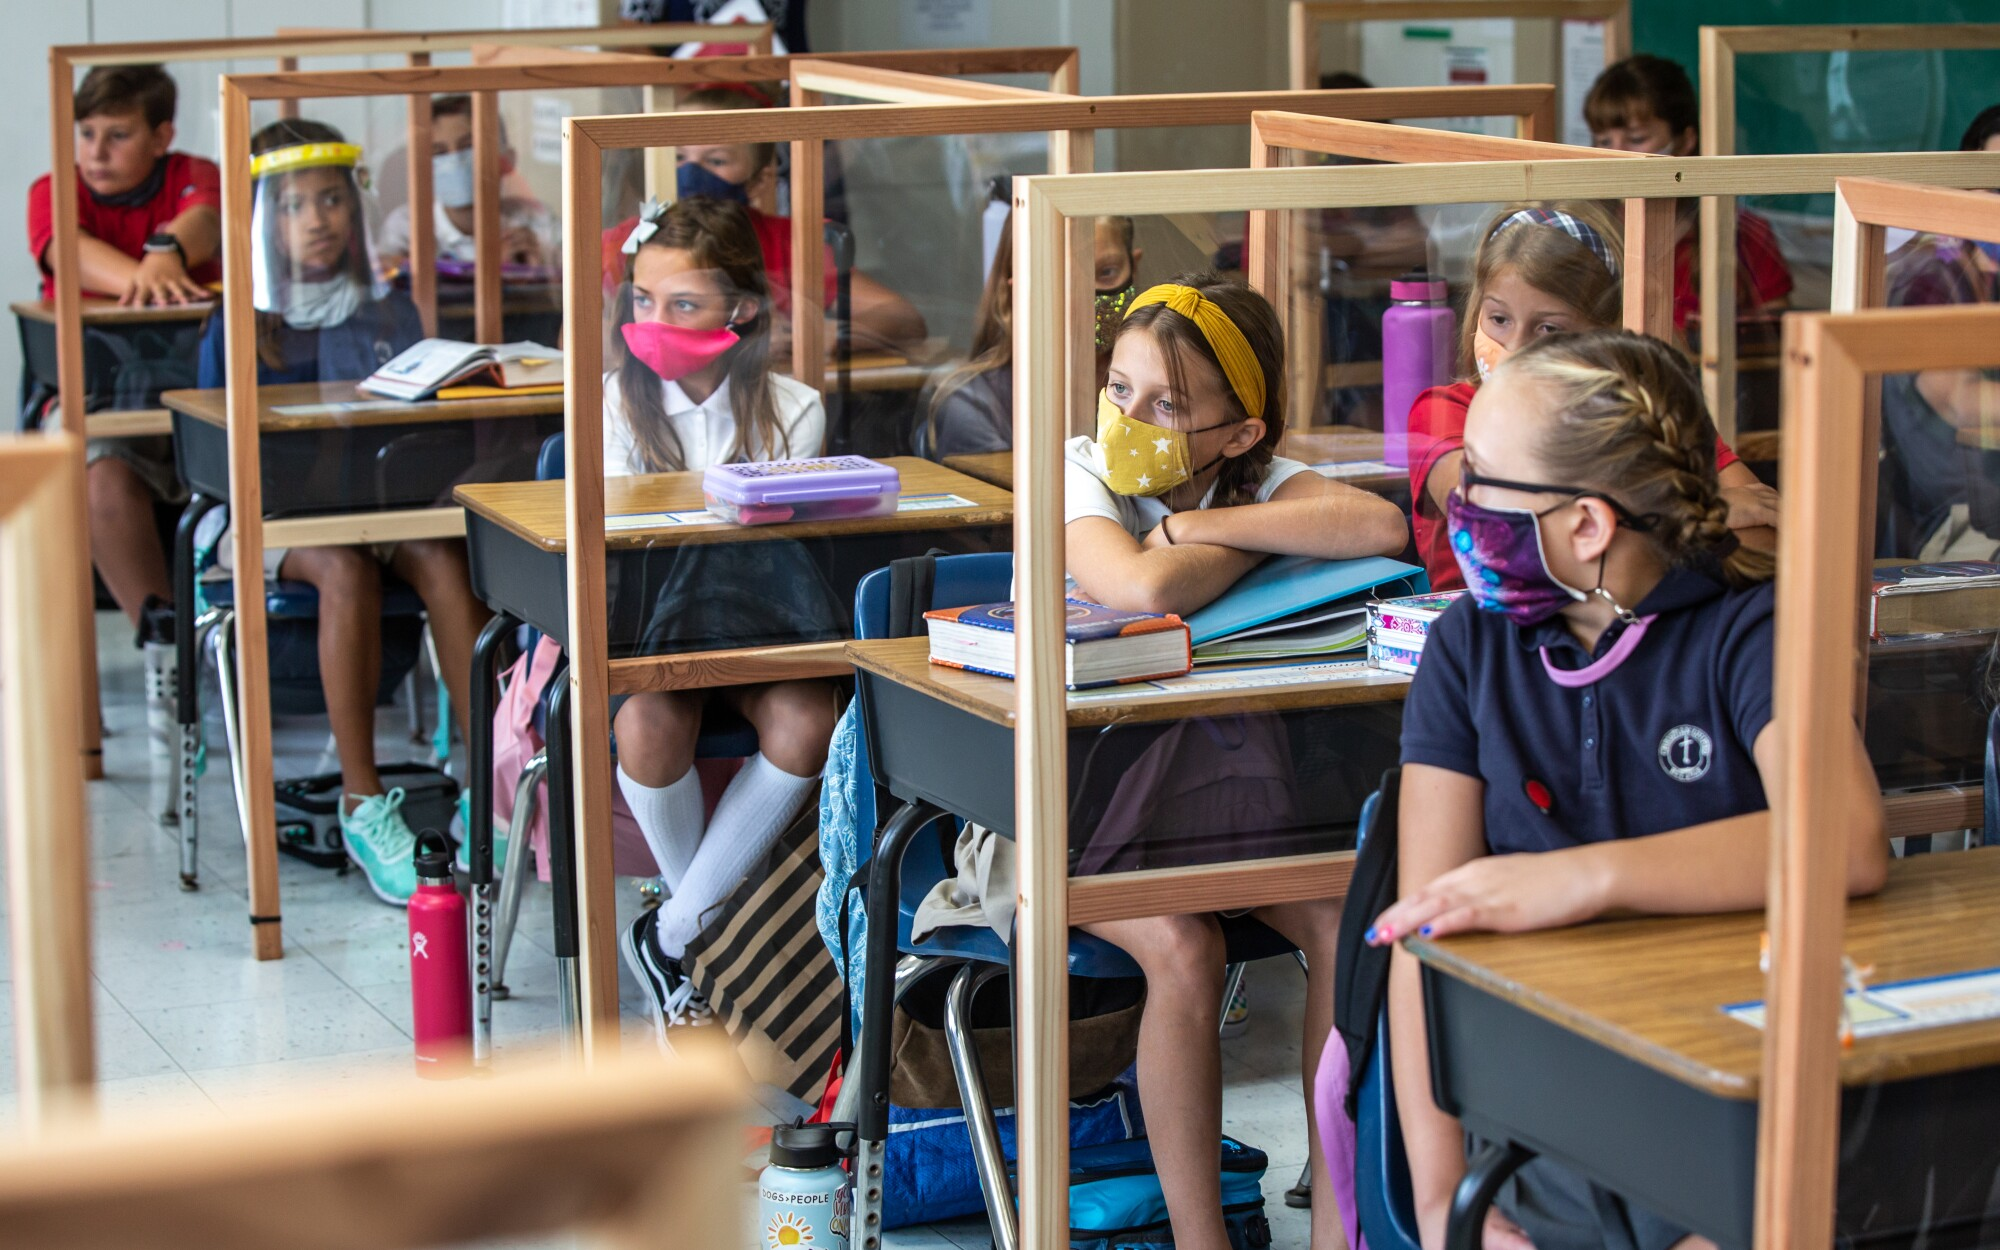 Plexiglass dividers separate students desks at Christian Unified East elementary school in El Cajon on Monday.